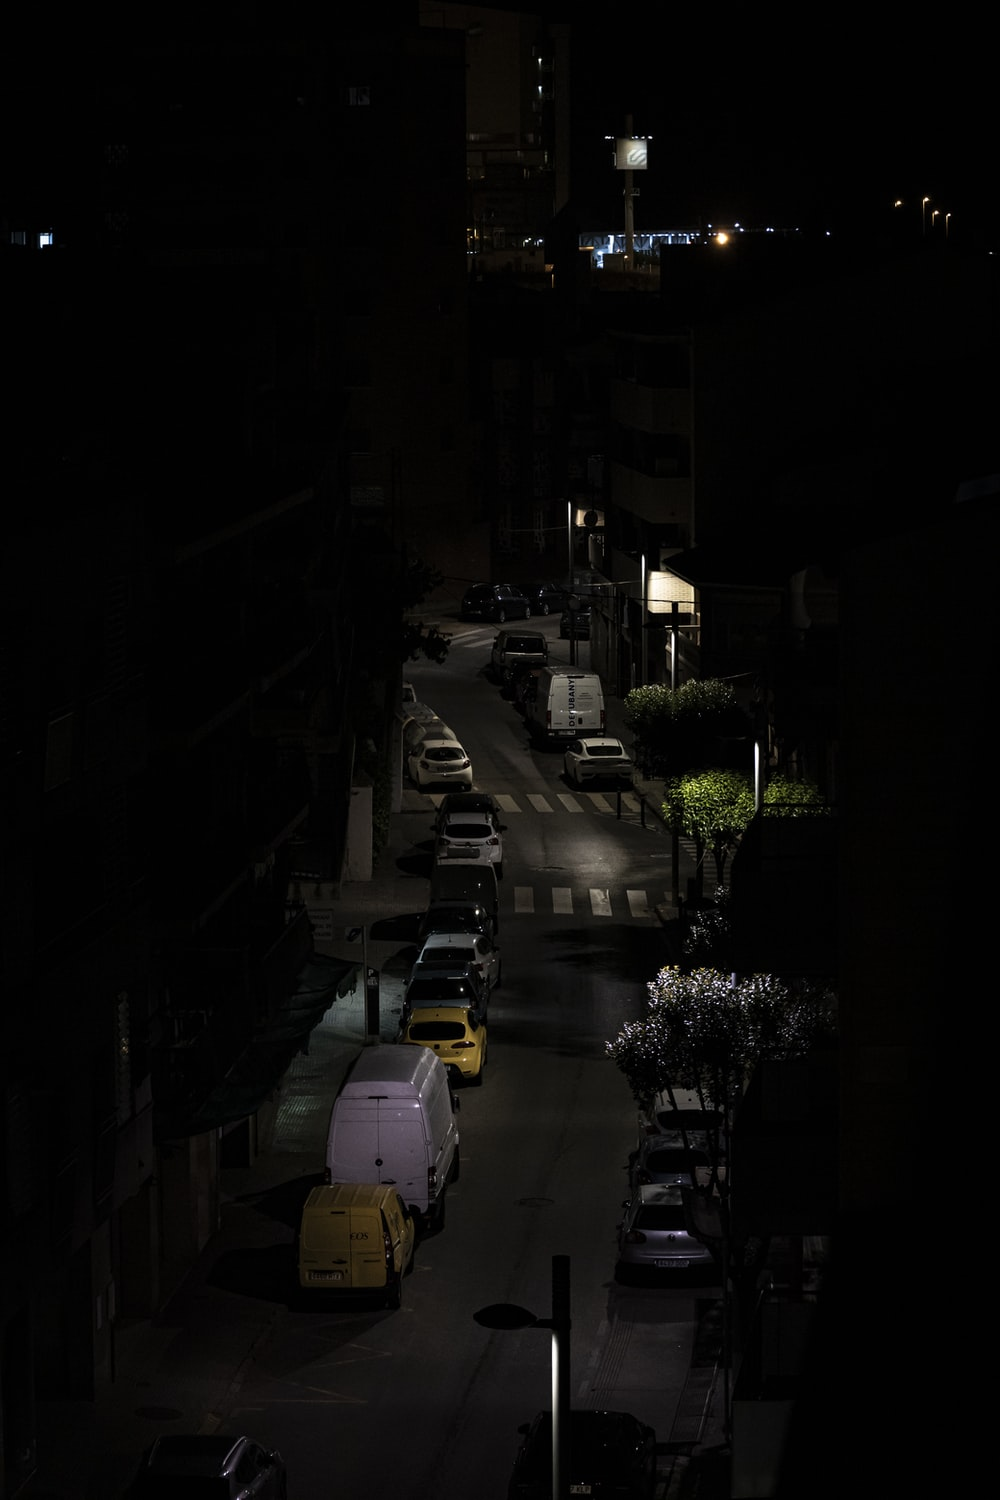 cars parked on the side of the road during night time